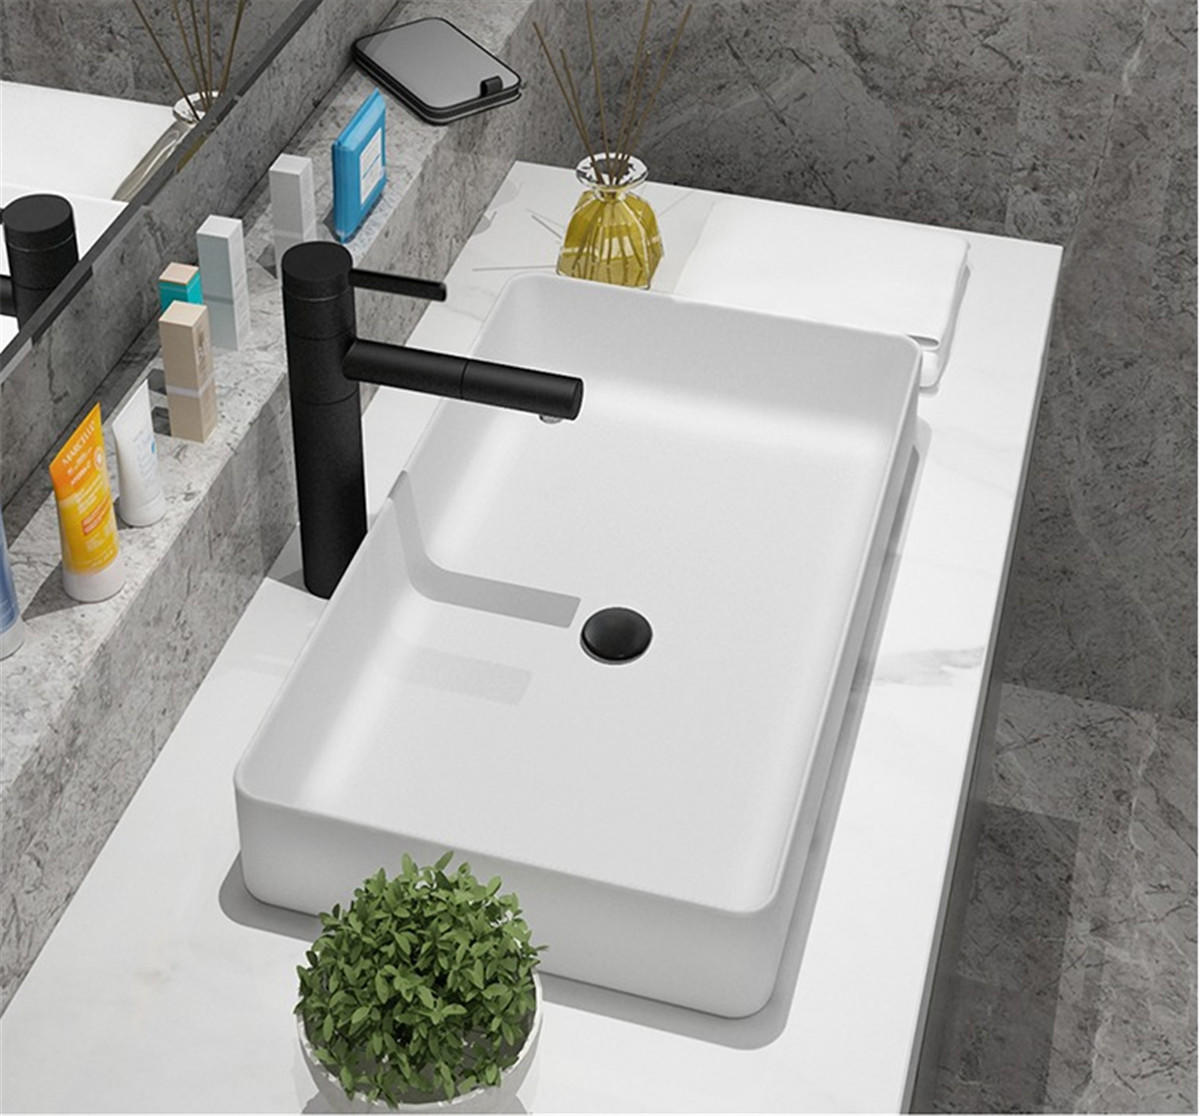 Ceramics counter top wash sinks in Pure White Color RECTANGULAR SHAPE apply for home decor